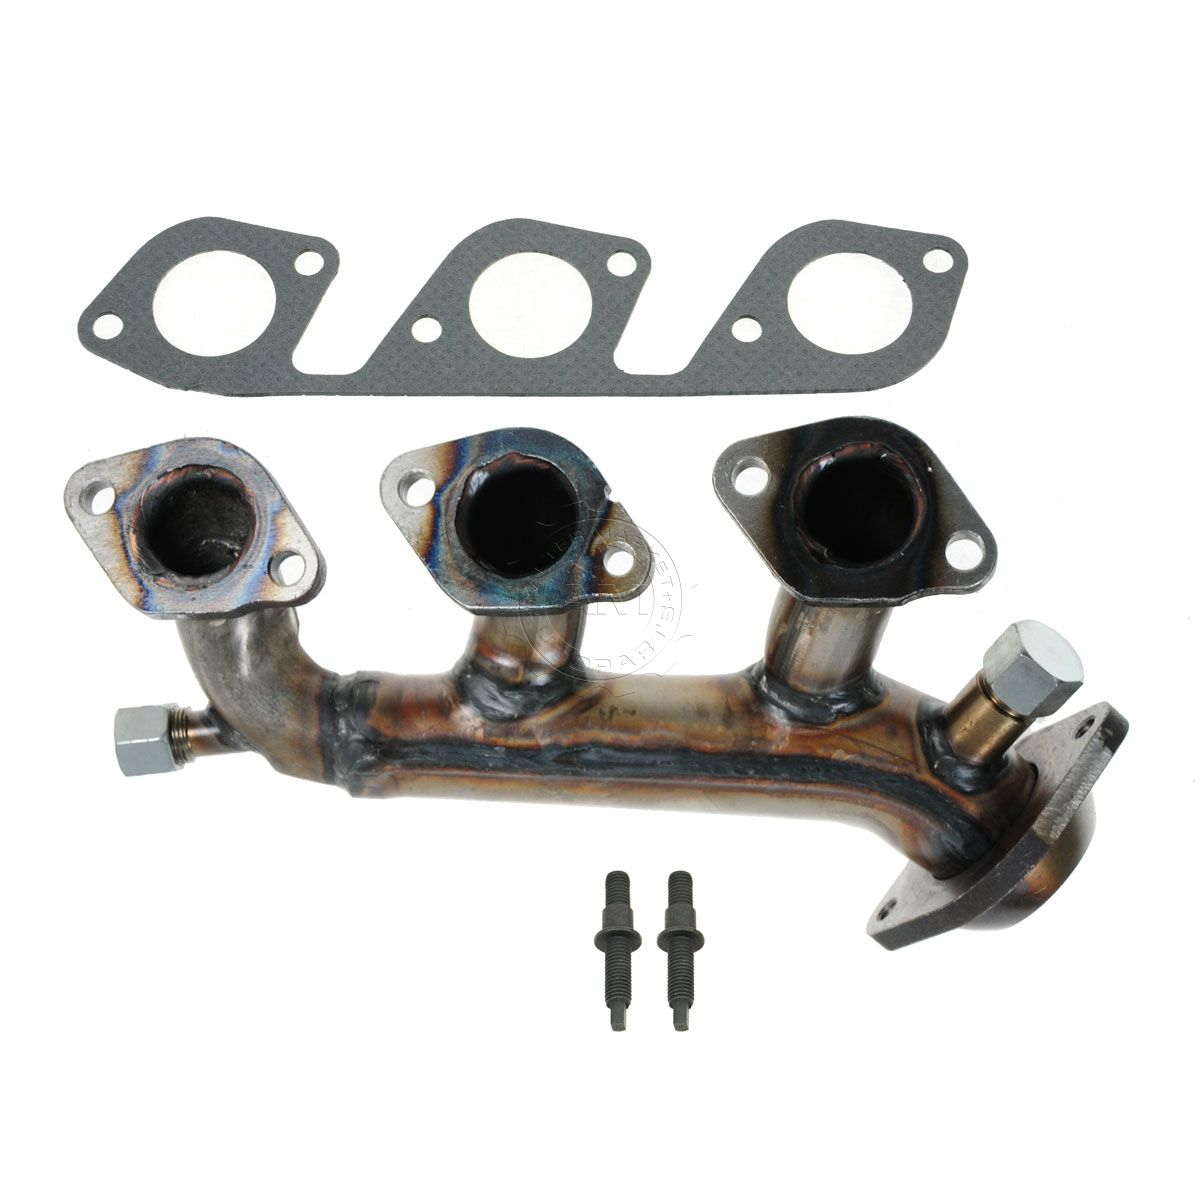 DORMAN 674-536 Exhaust Manifold & Gasket Kit For Ford